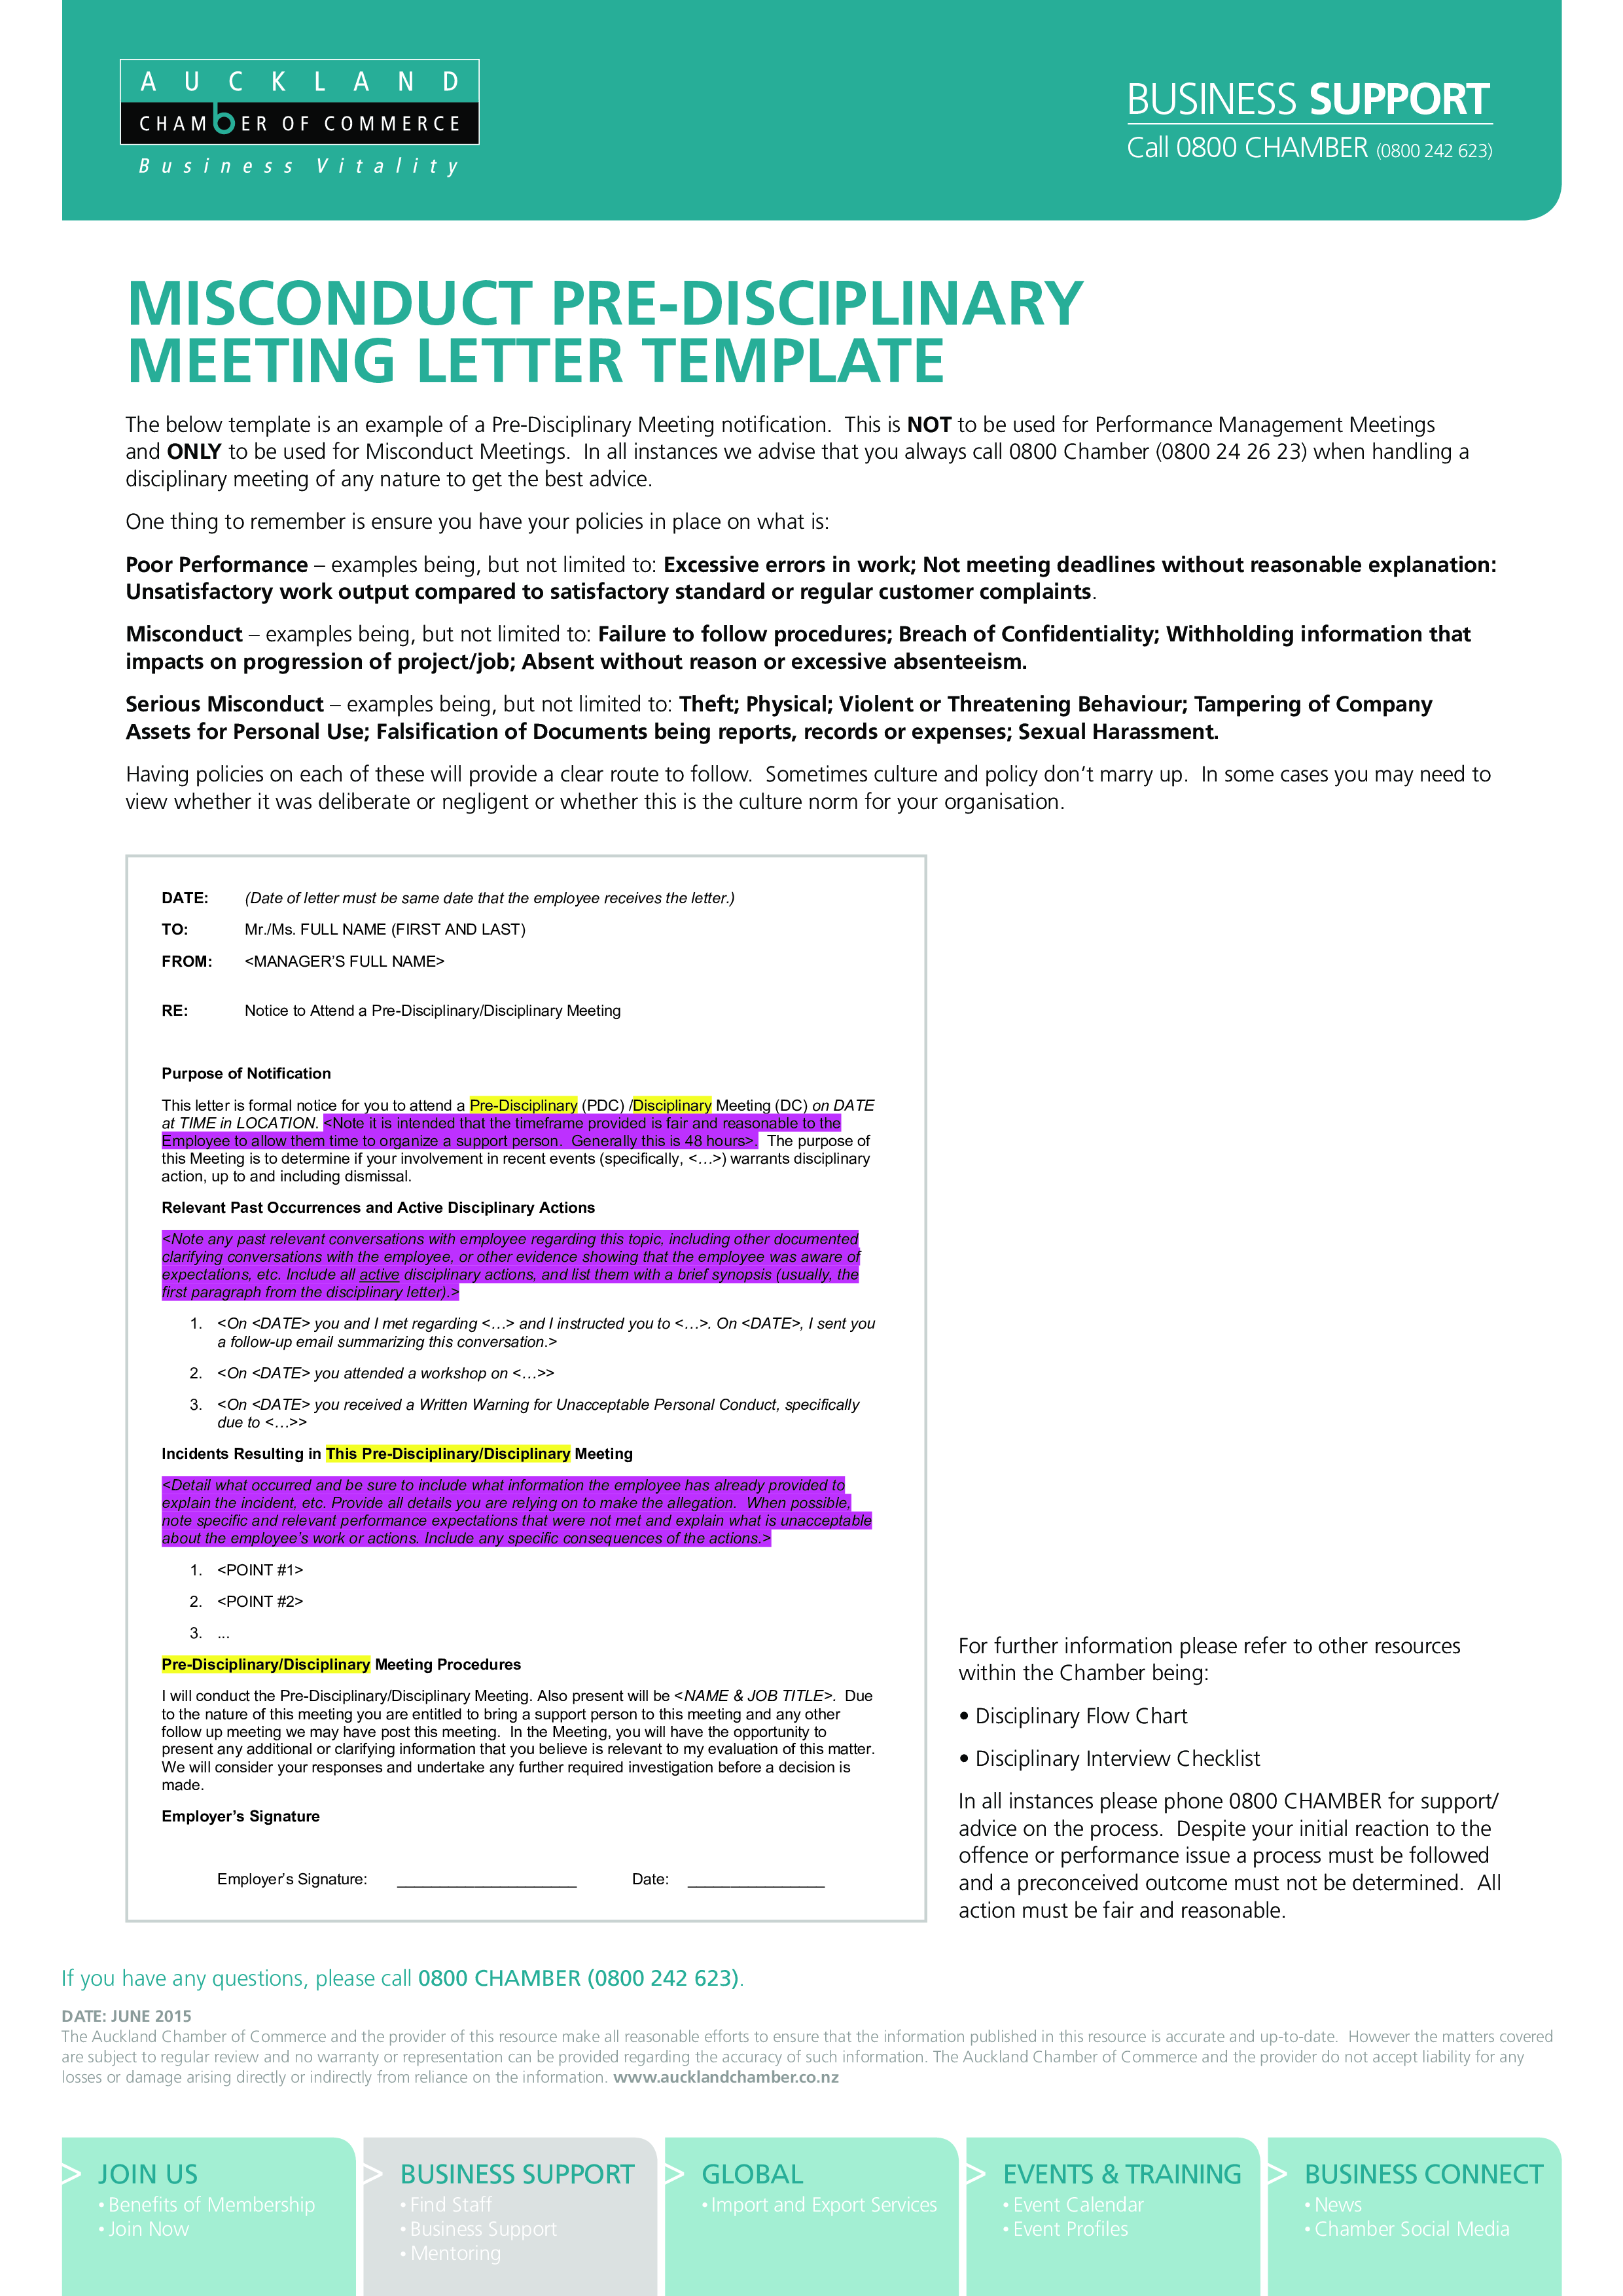 Free disciplinary meeting letter templates at allbusinesstemplates disciplinary meeting letter main image download template spiritdancerdesigns Images